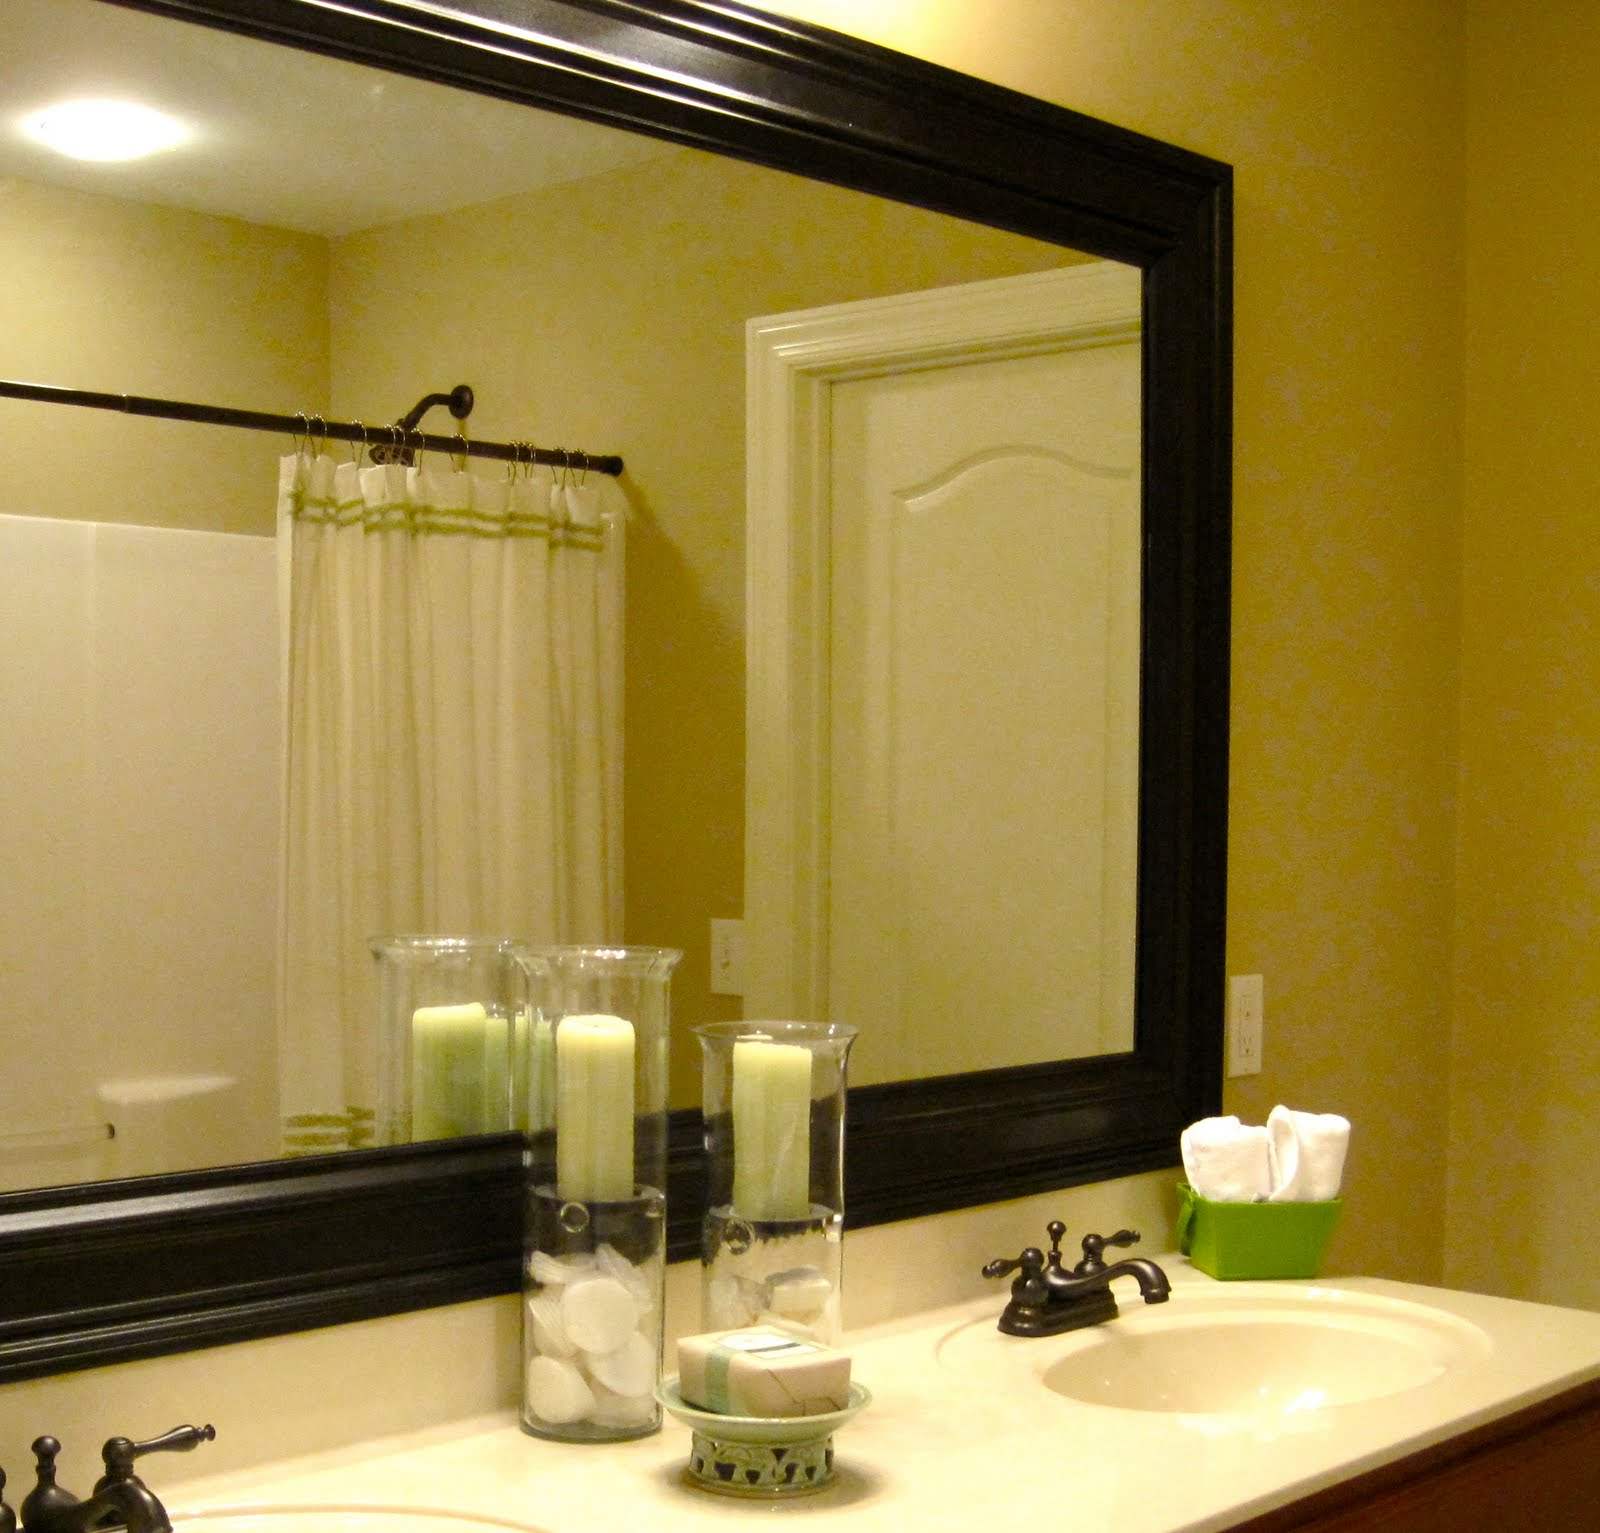 Framing Bathroom Mirror Over Metal Clips remodelaholic | bathroom mirror frame tutorial